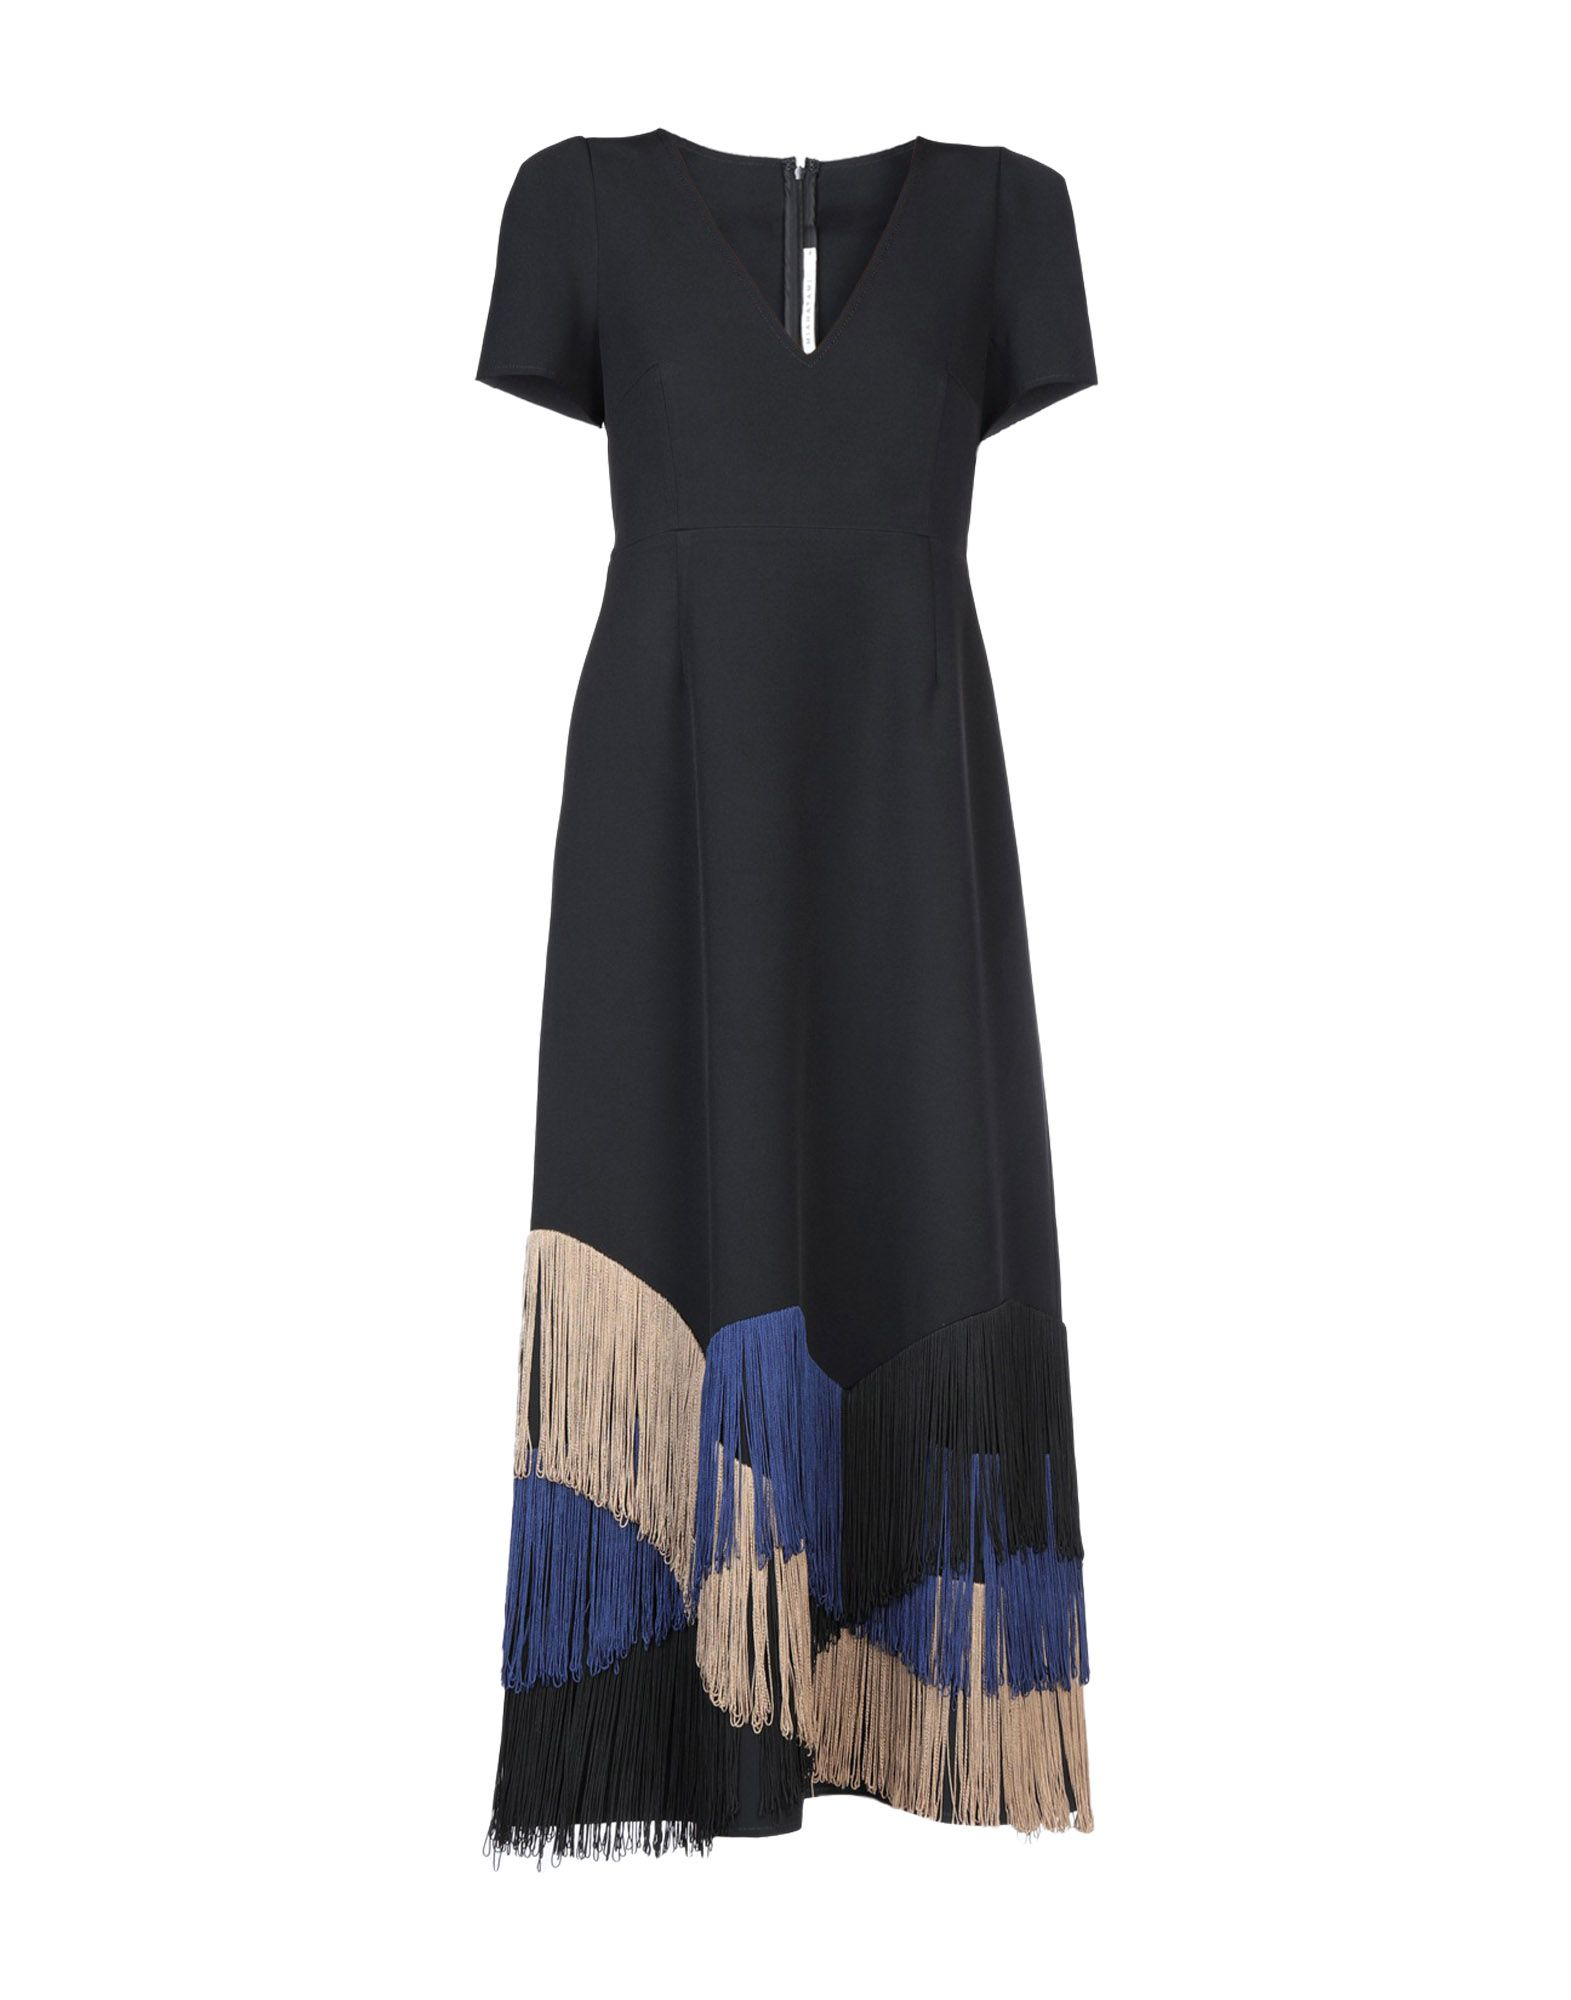 MIAHATAMI Long Dress in Black